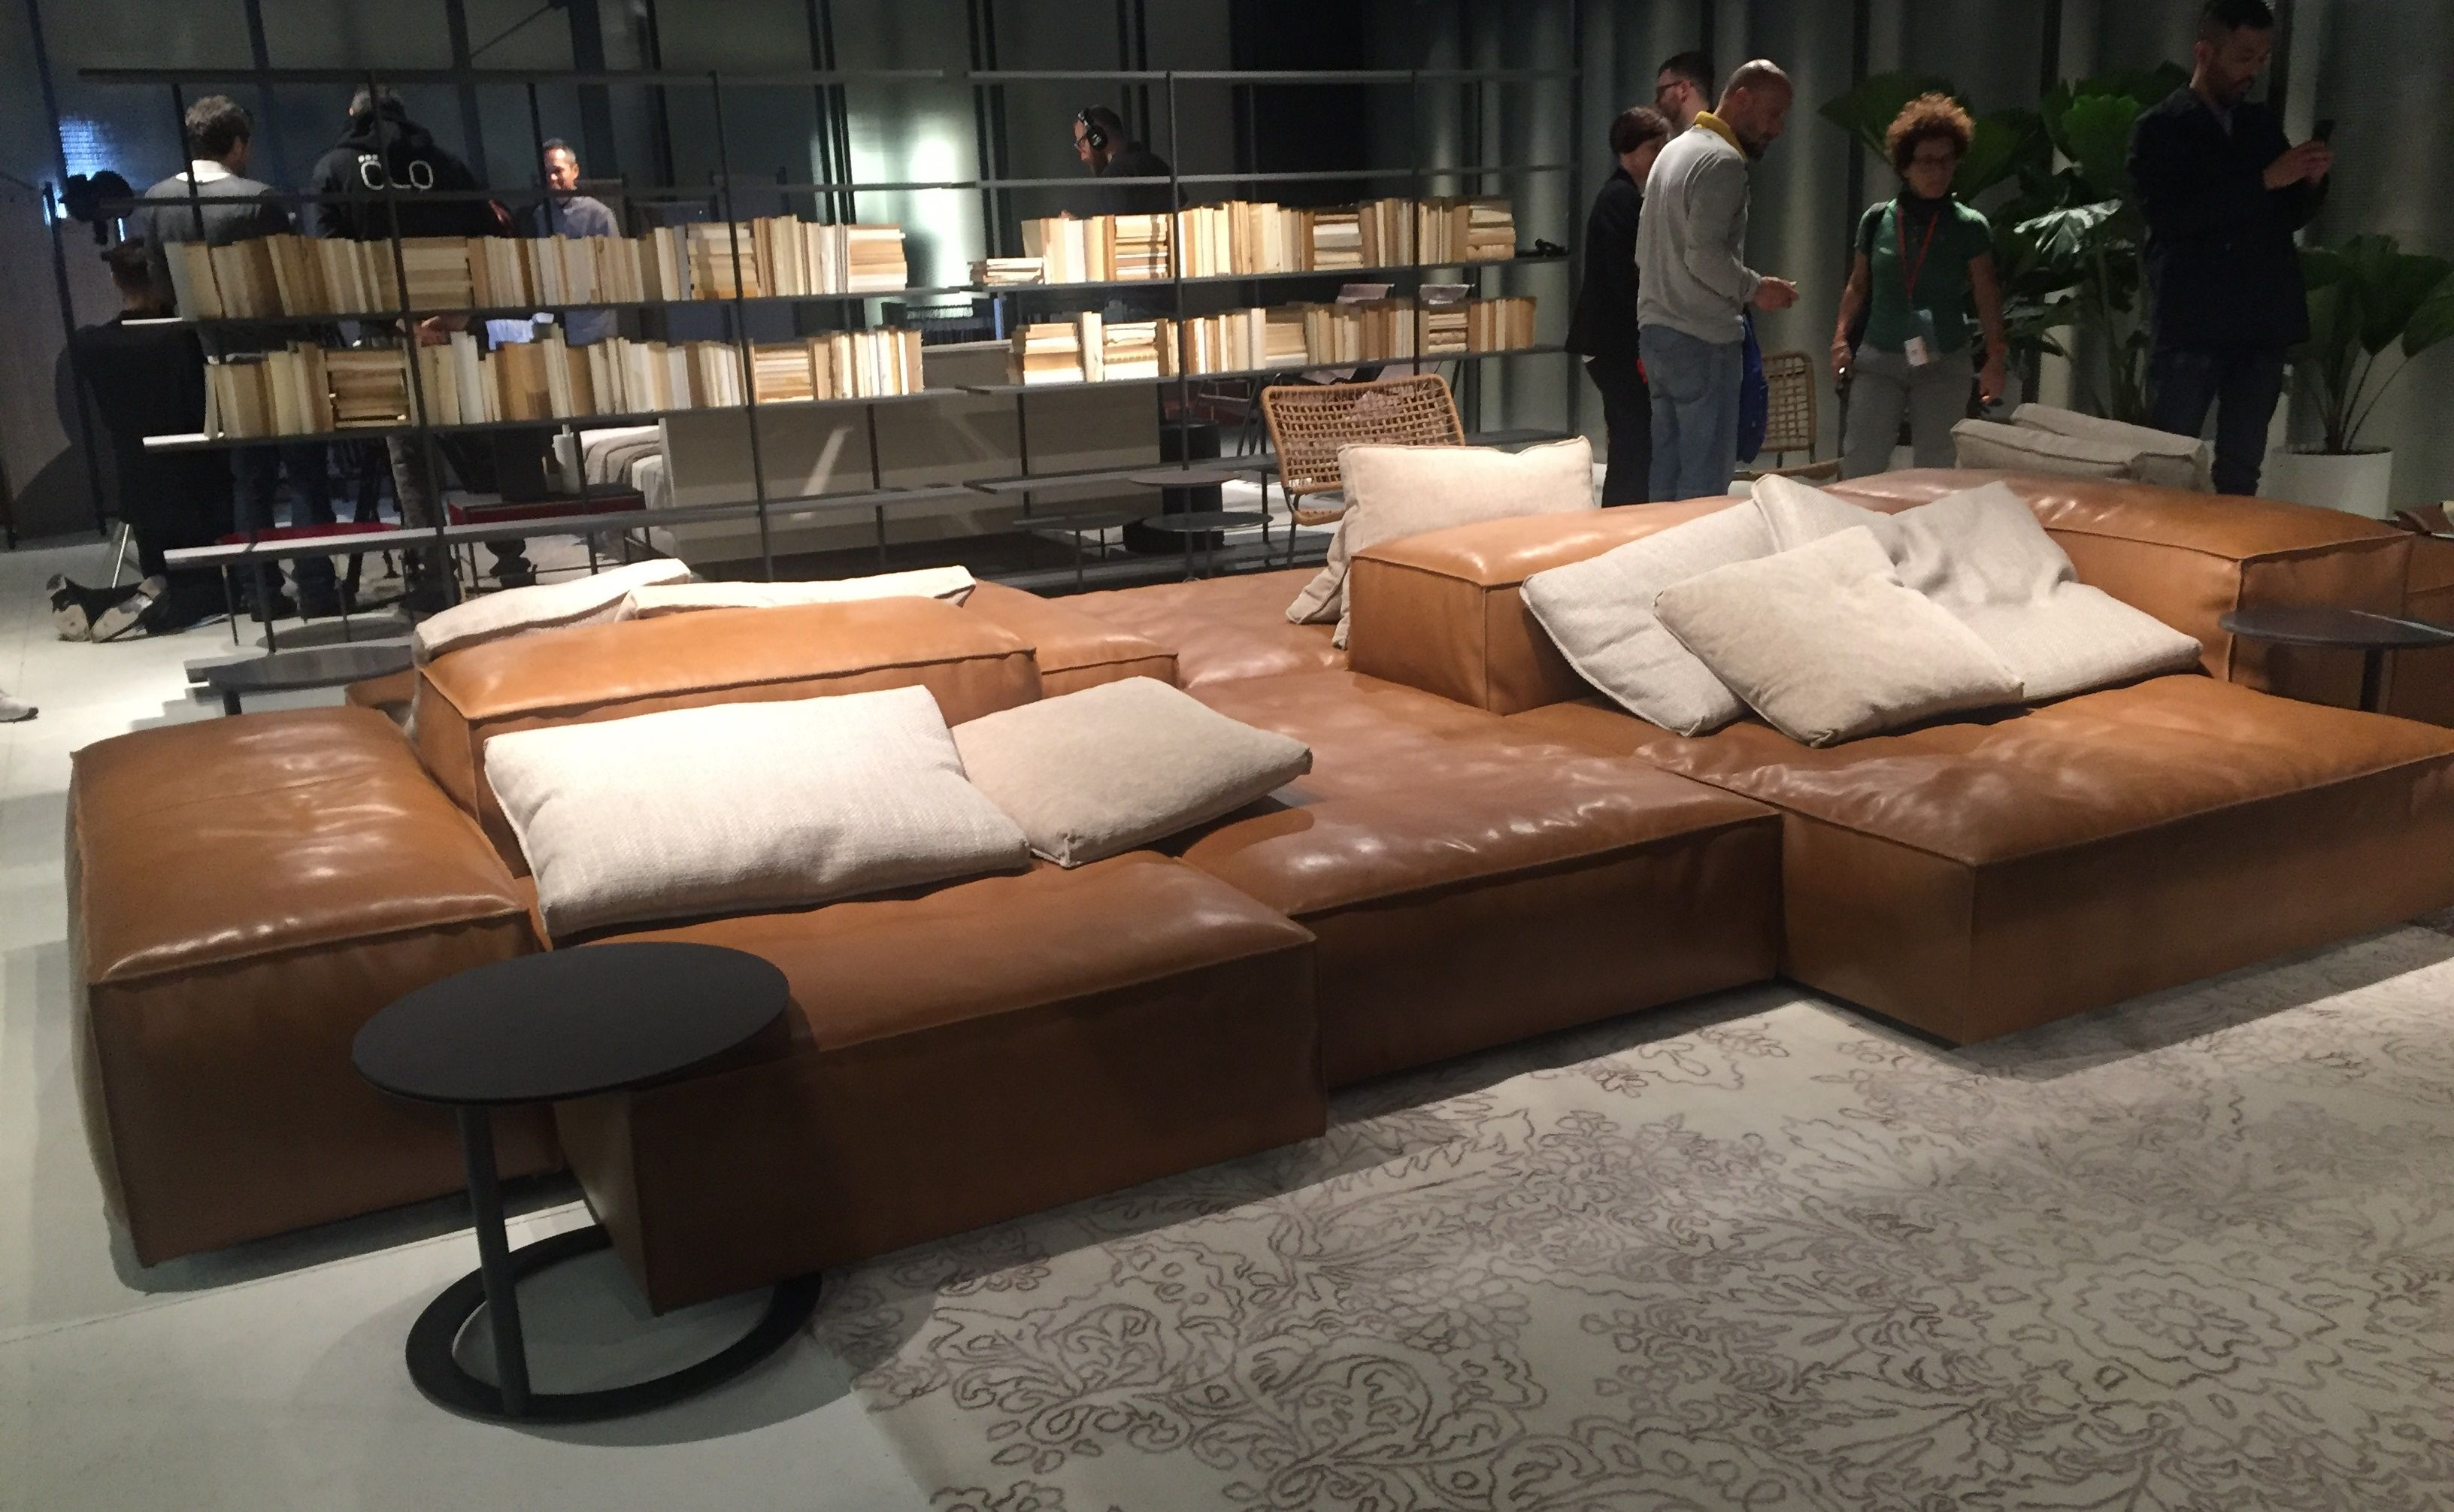 The now iconic seating system by Piero Lissoni for Living Divani ...